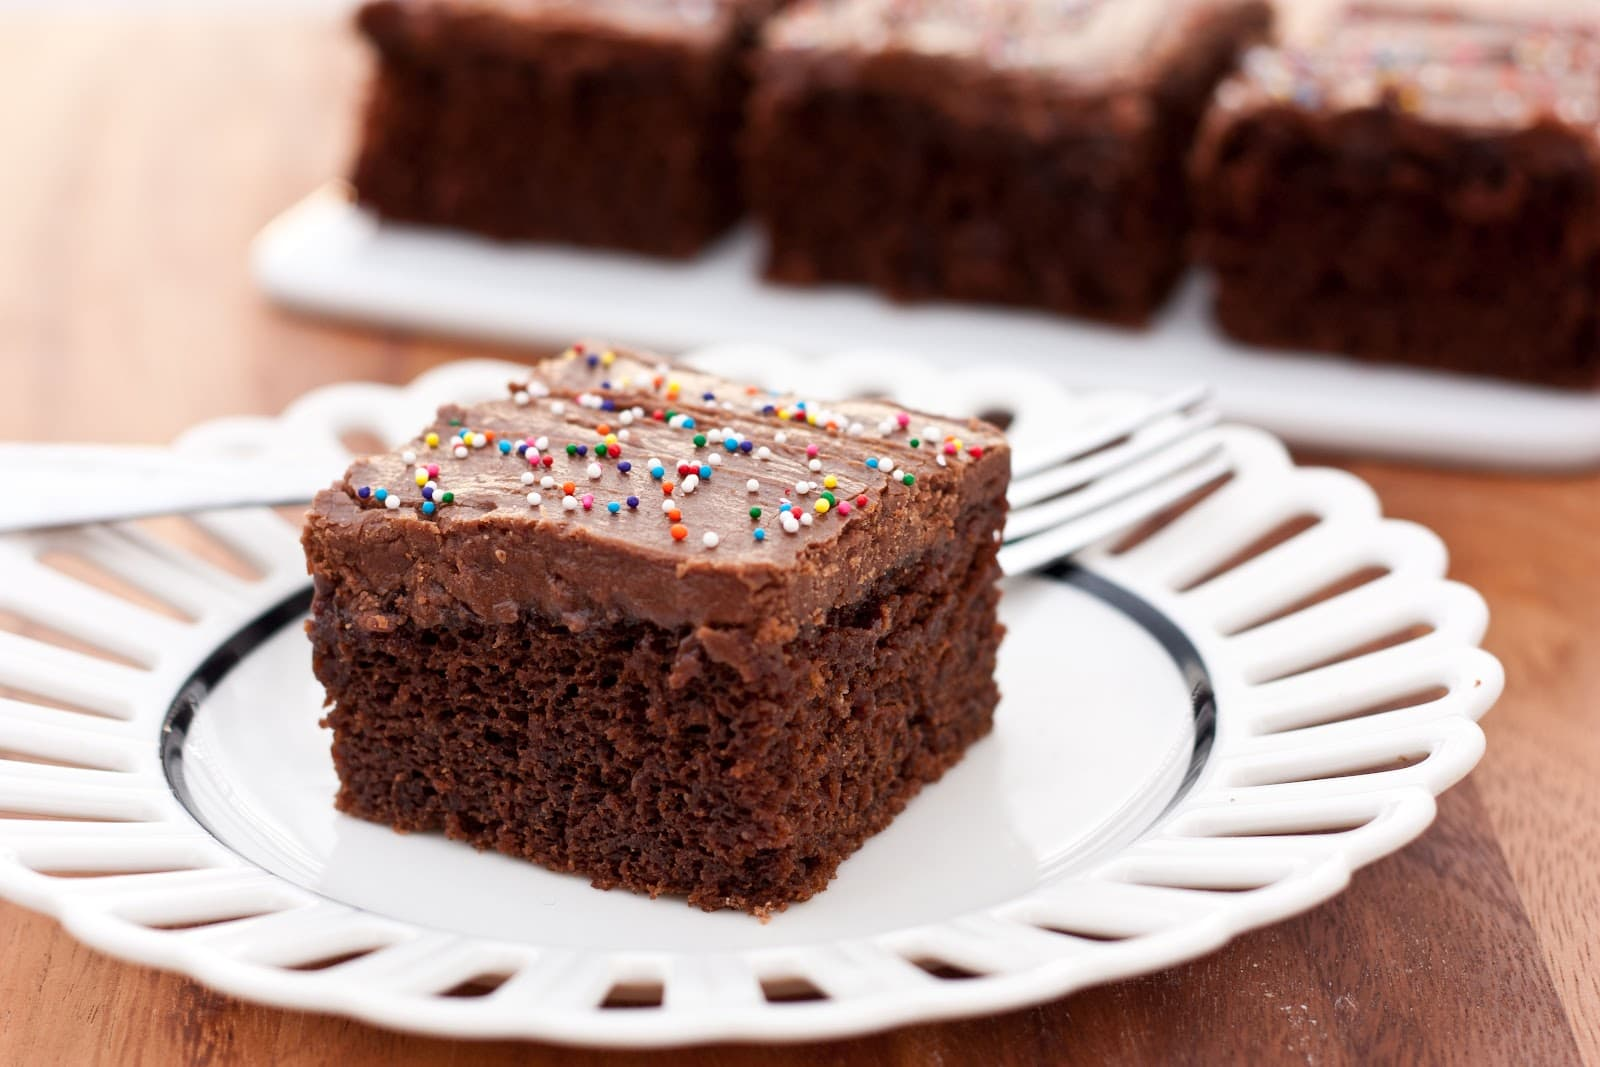 The Best Chocolate Cake You Ever Ate - Cooking Classy